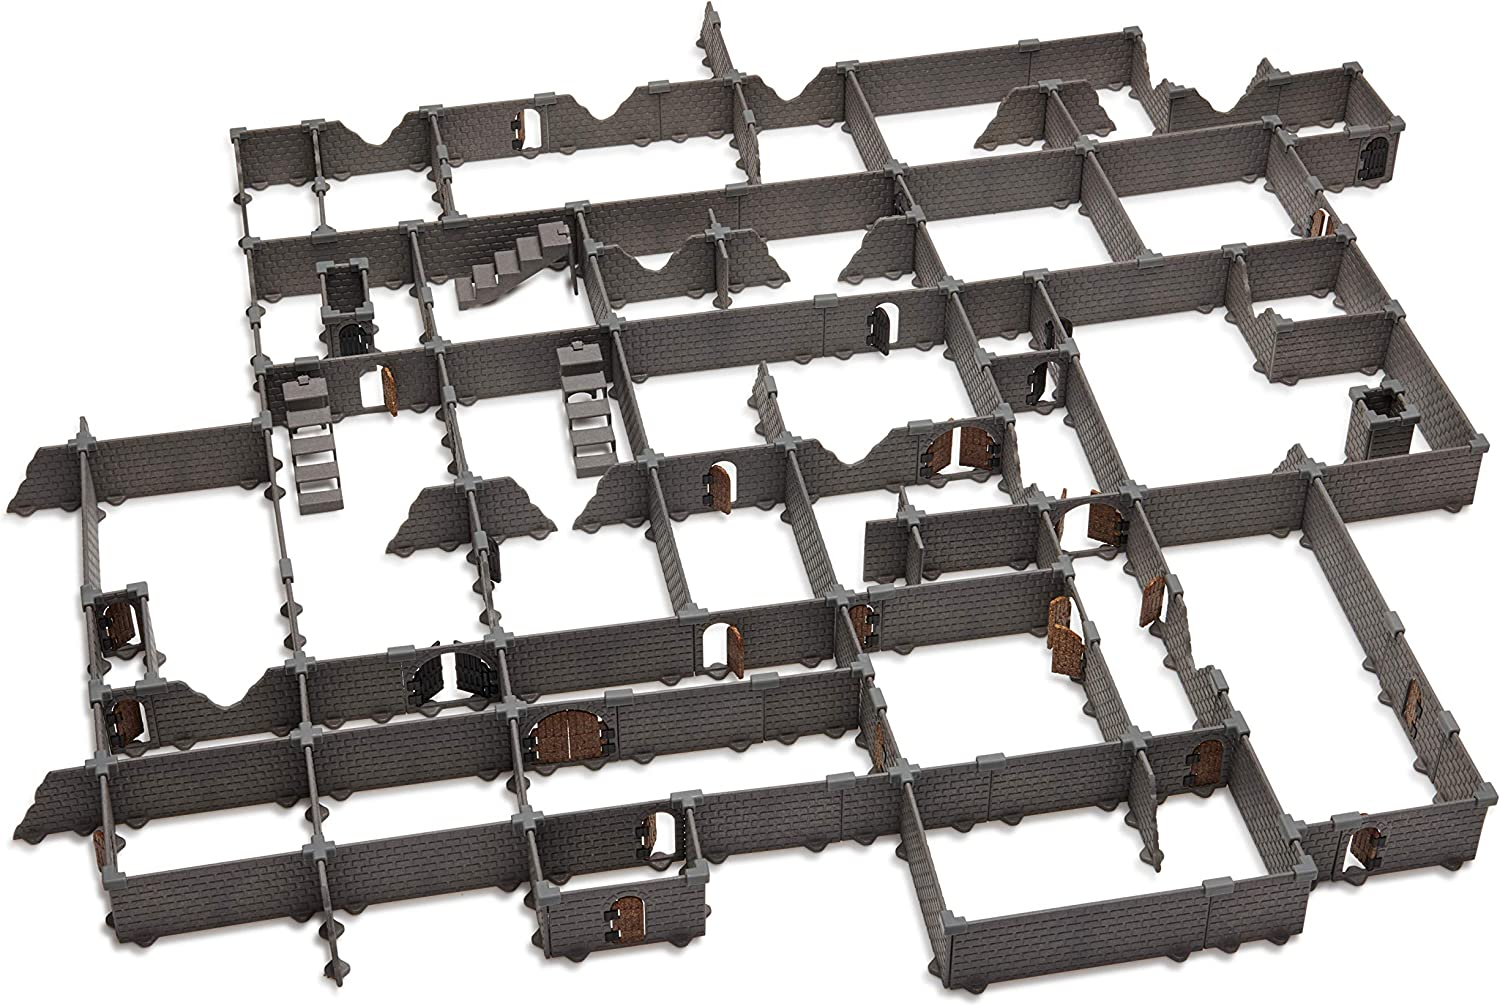 Modular Dungeon System: Tabletop & RPG Terrain Game Set for Dungeons & Dragons, Pathfinder, Castles & Crusades, 13th Age, Runequest, Asunder, Zombicide, and More! - Knight Set (460+ Pieces)